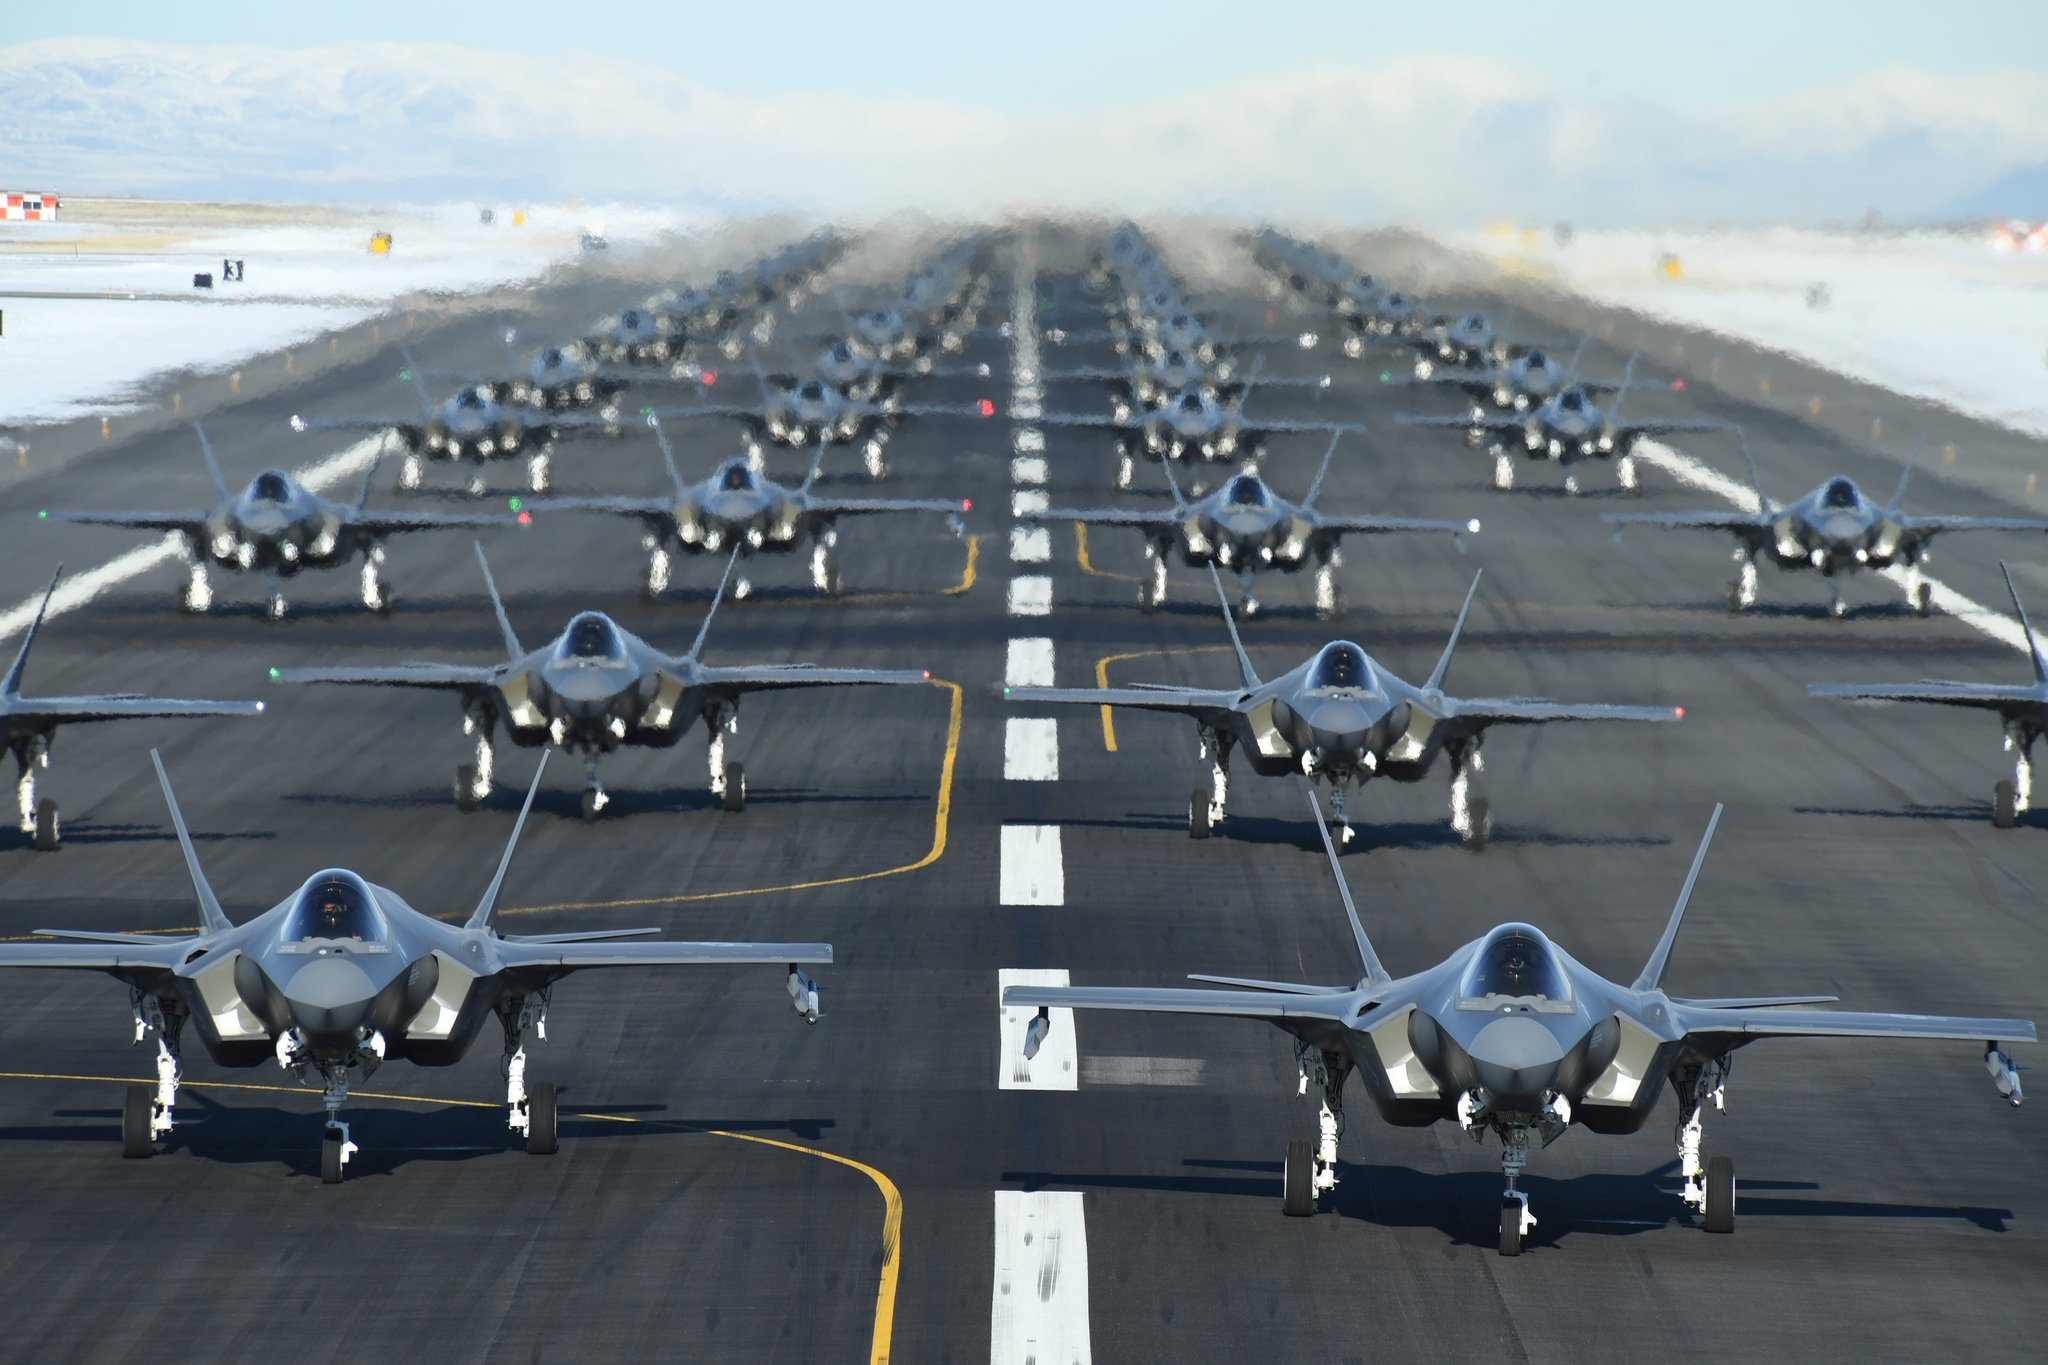 ENnodtTUUAEjDuG - U.S. Air Force put dozens of F-35 fighter jets into the air – Defence Blog